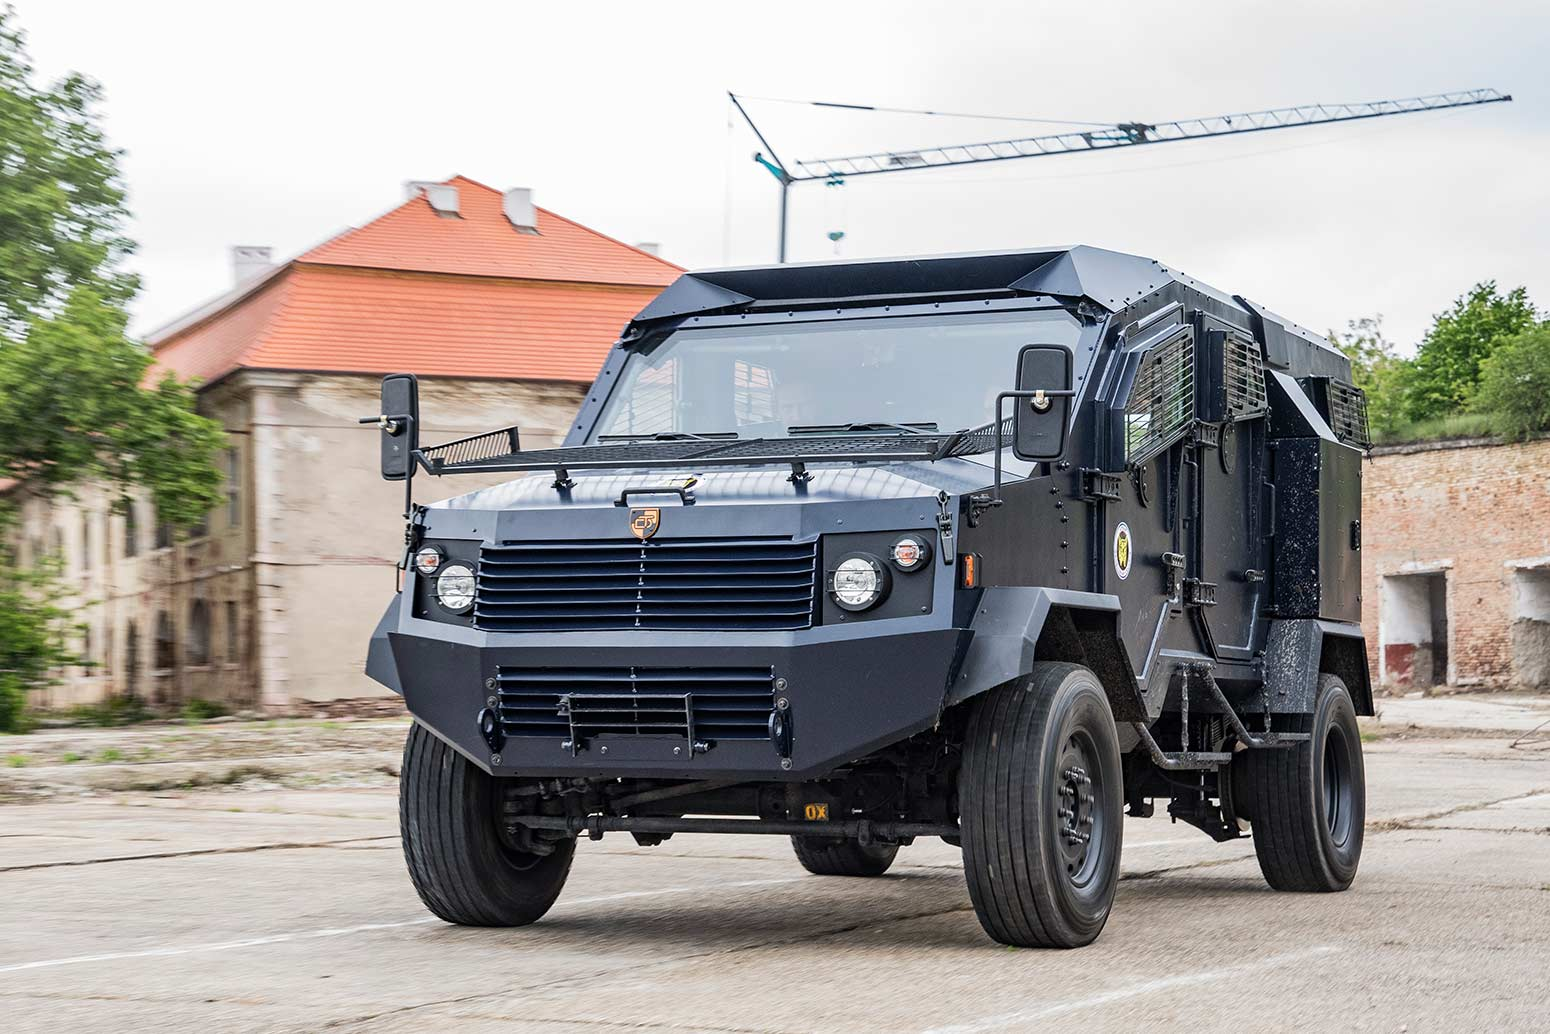 DefTech armored vehicle WOLF on military exercise.